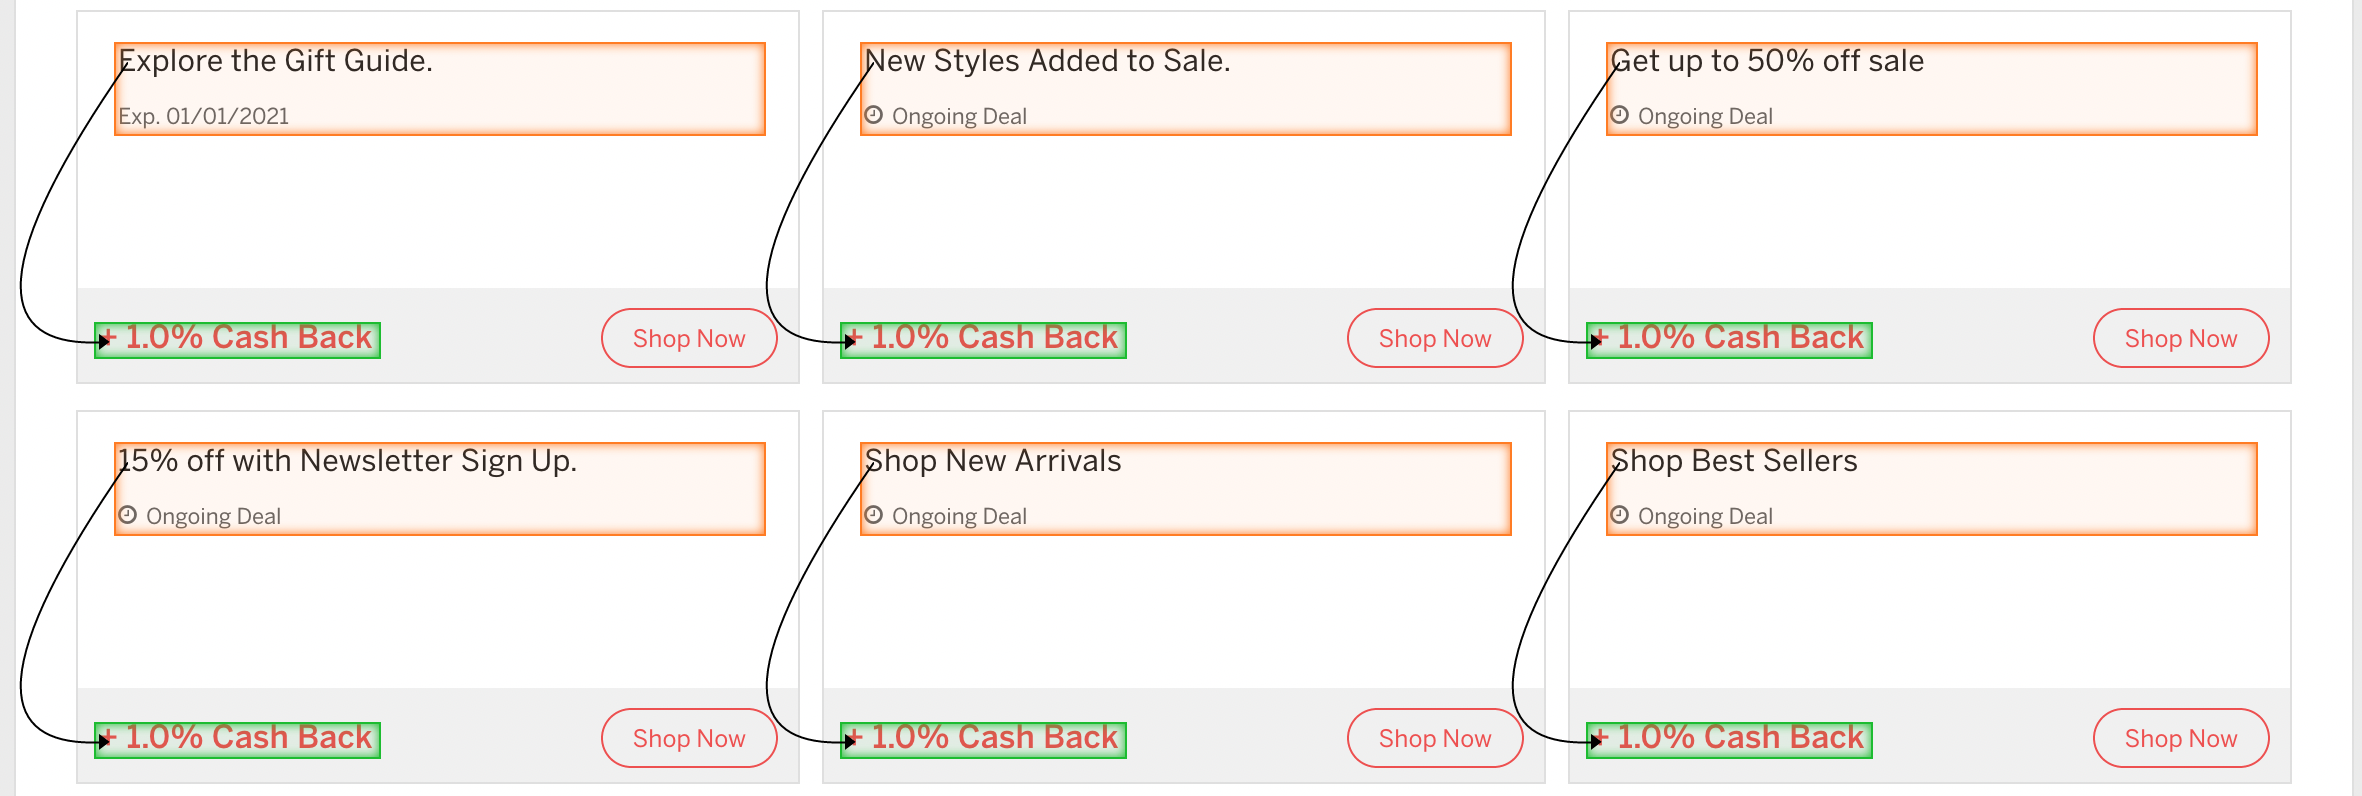 relative select command for coupons and offering